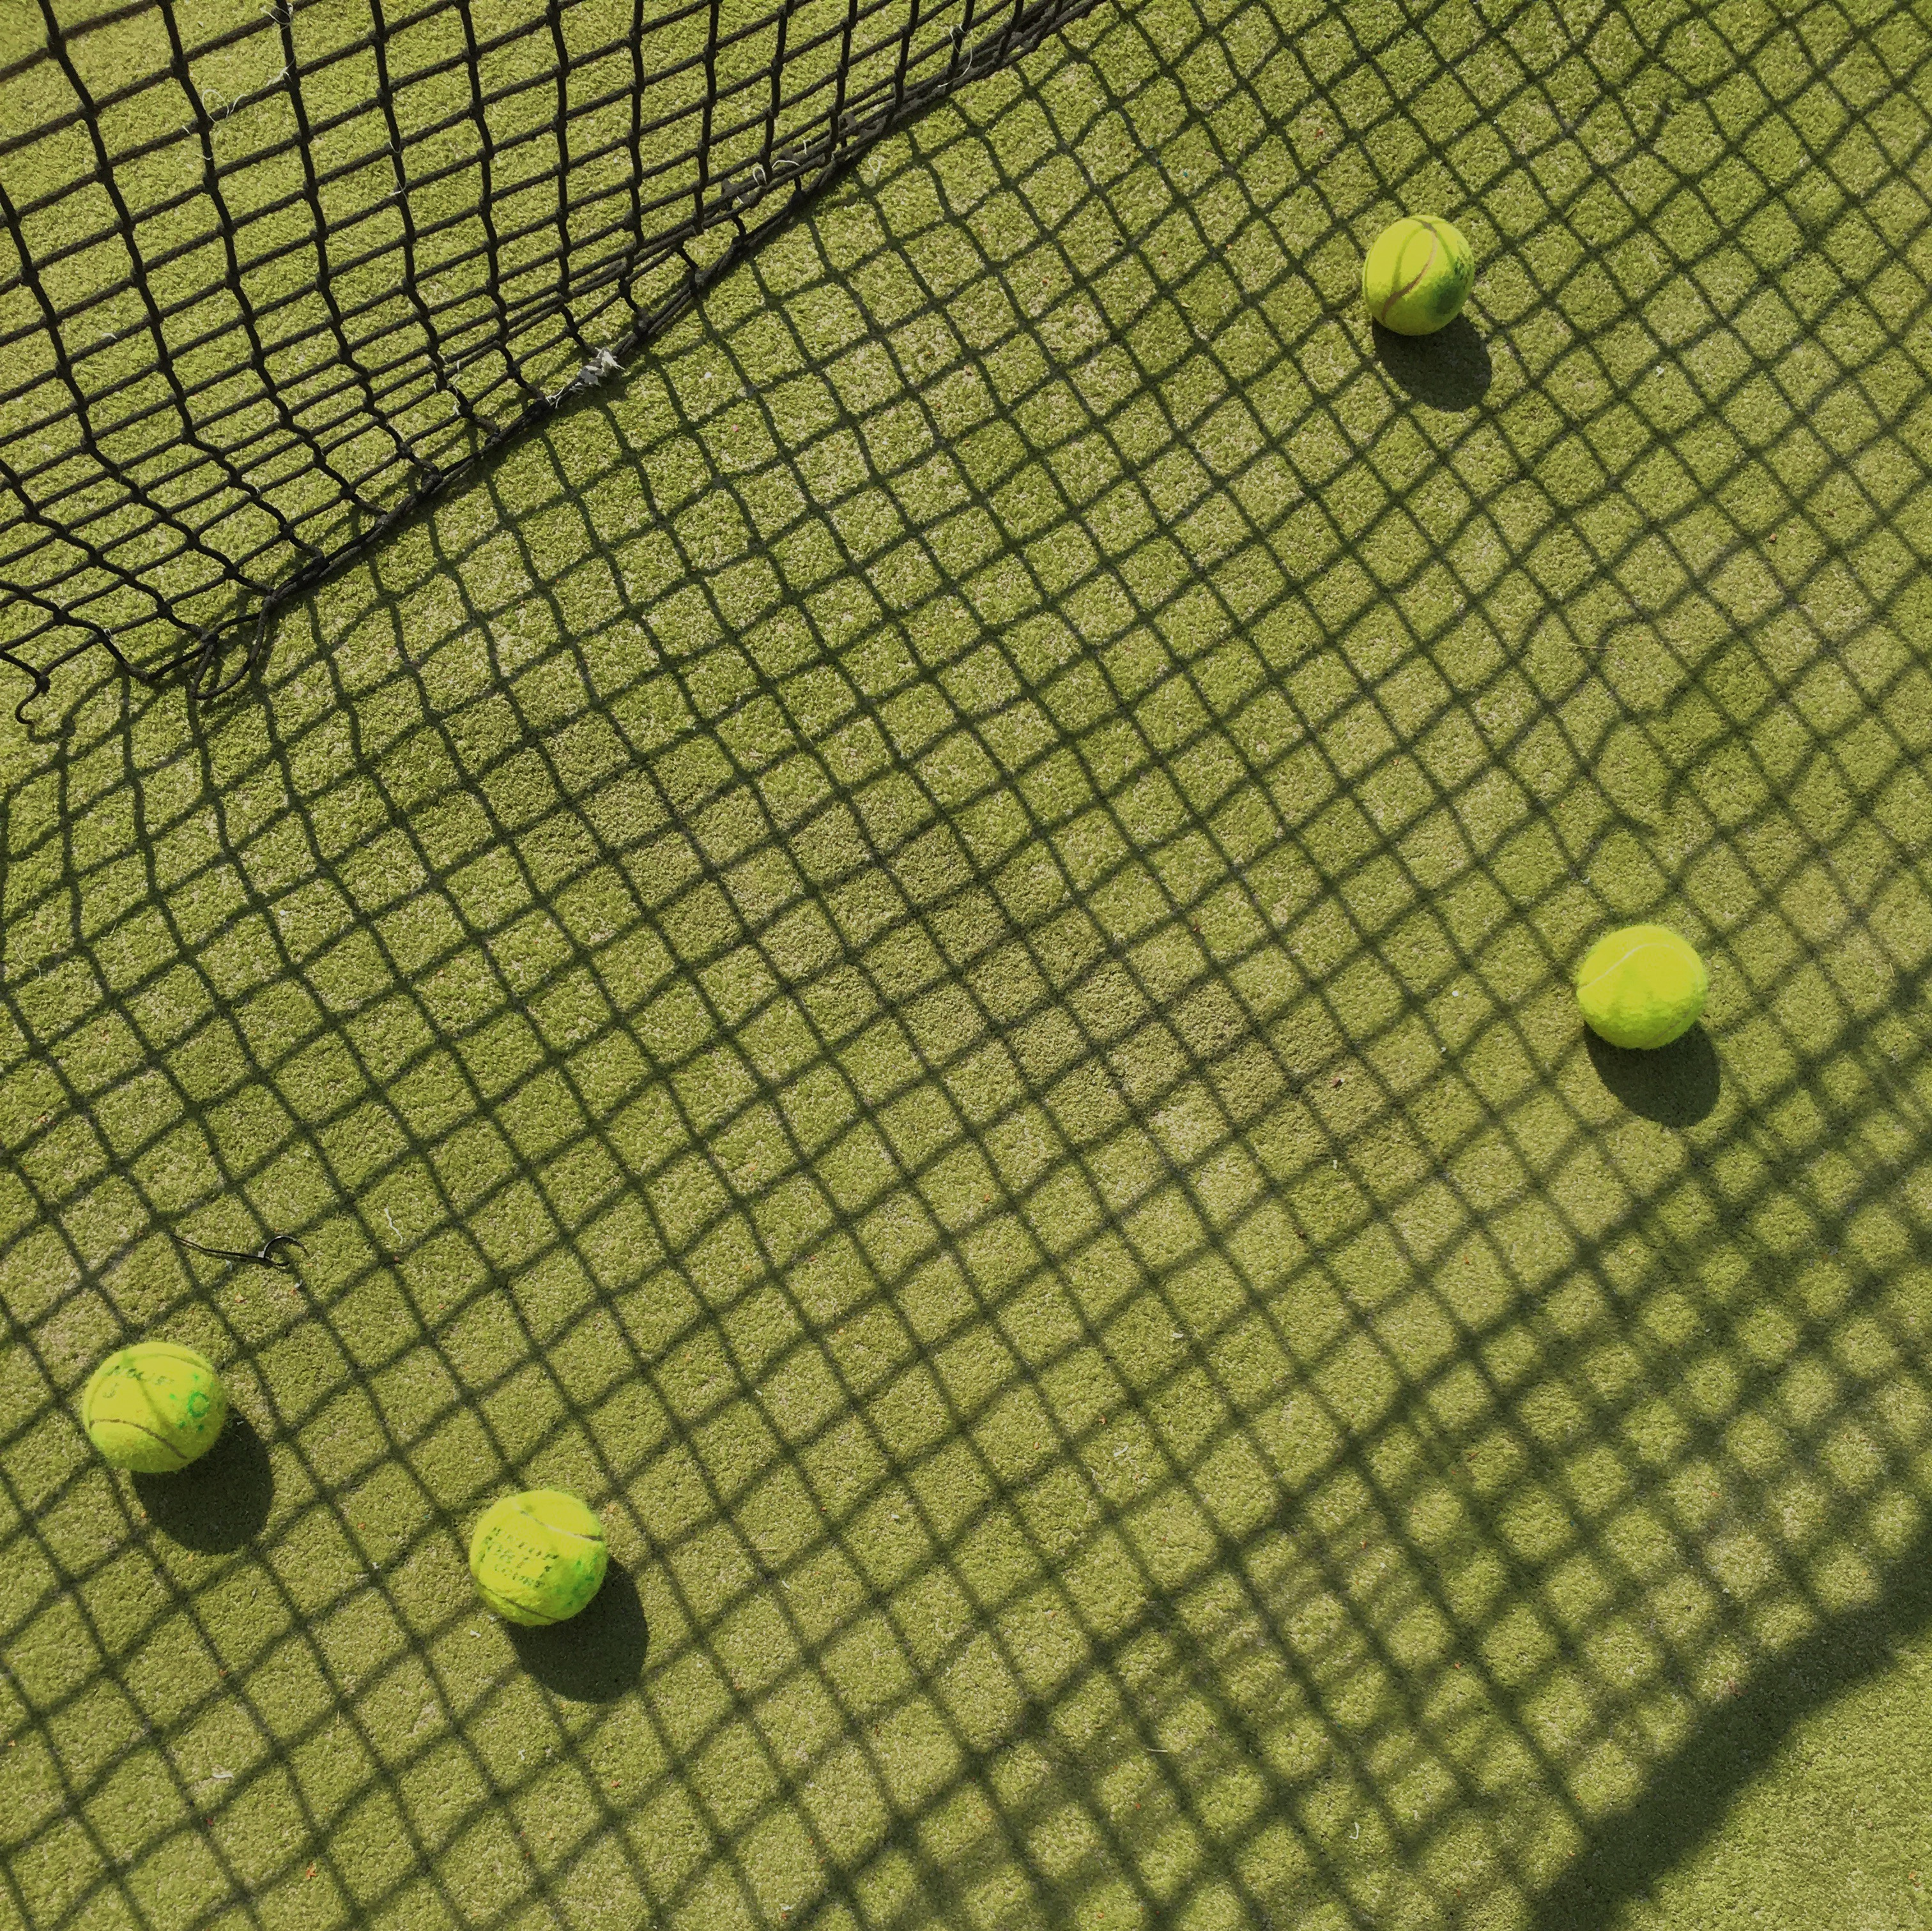 How To Choose The Right Tennis Court Windscreen For Your Facility